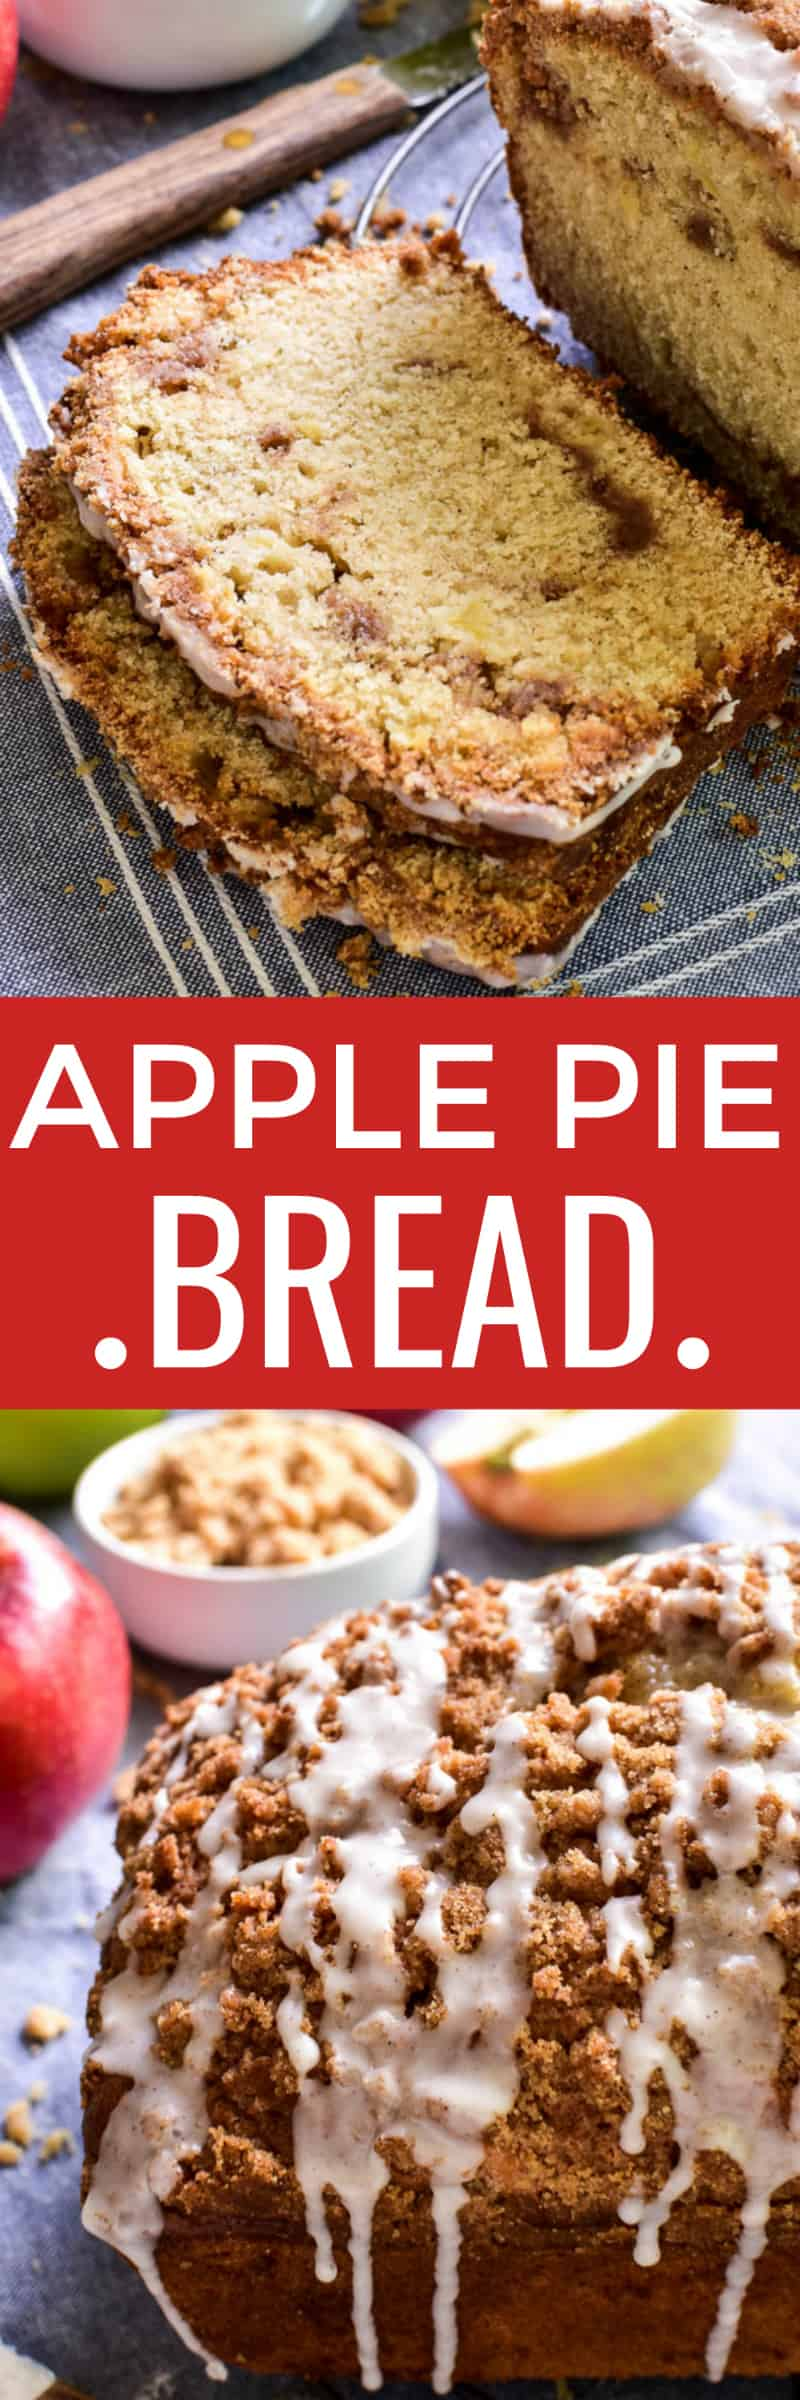 Collage image of Apple Pie Bread